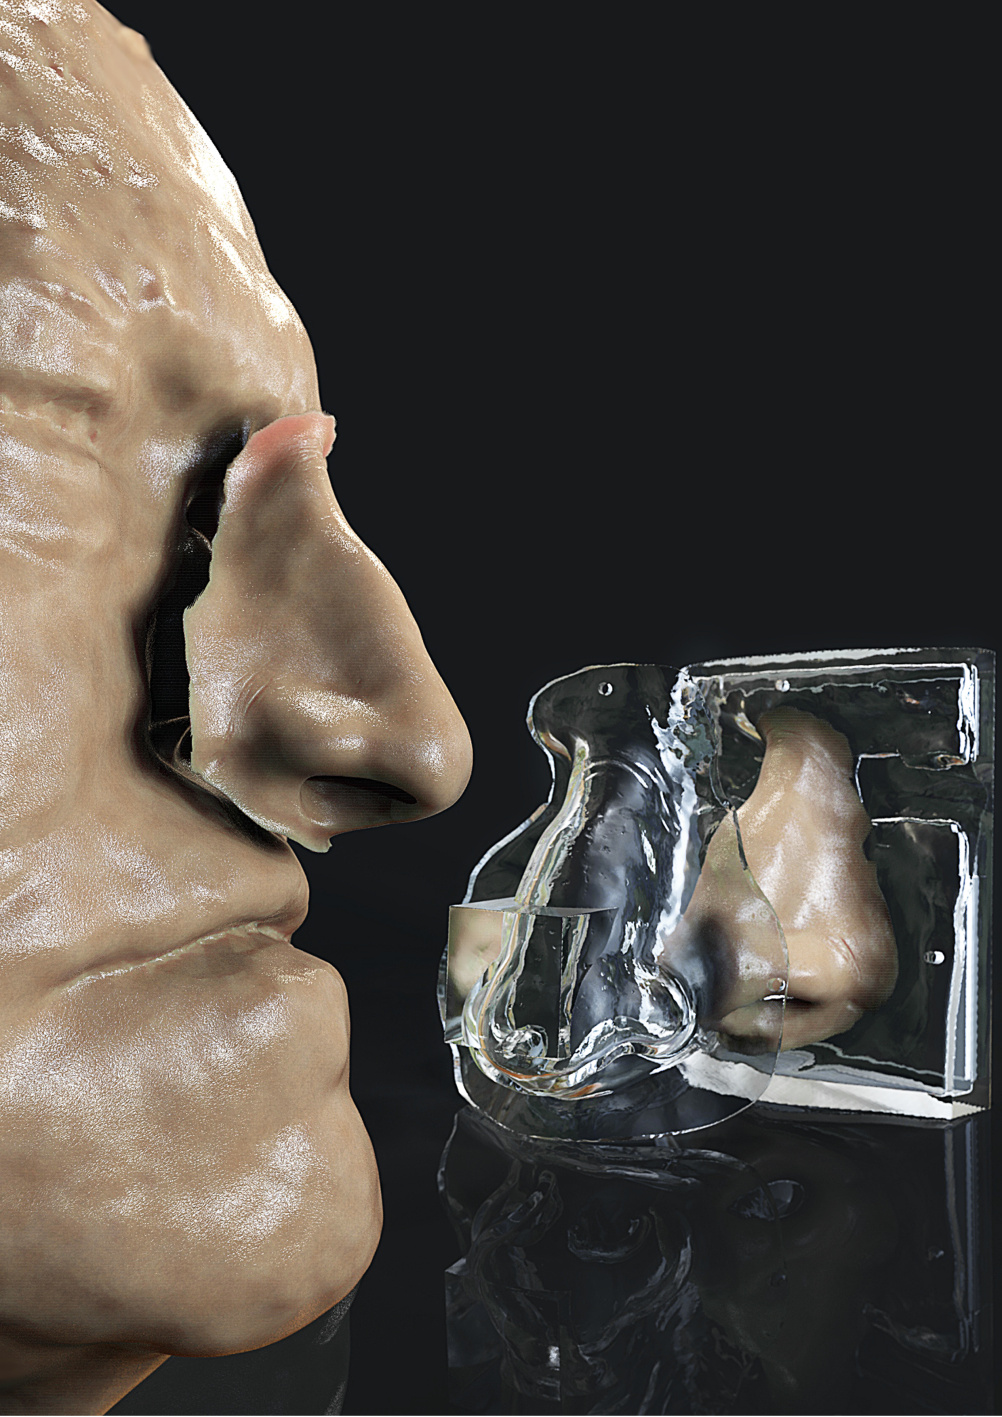 3D printed facial prostheis mould